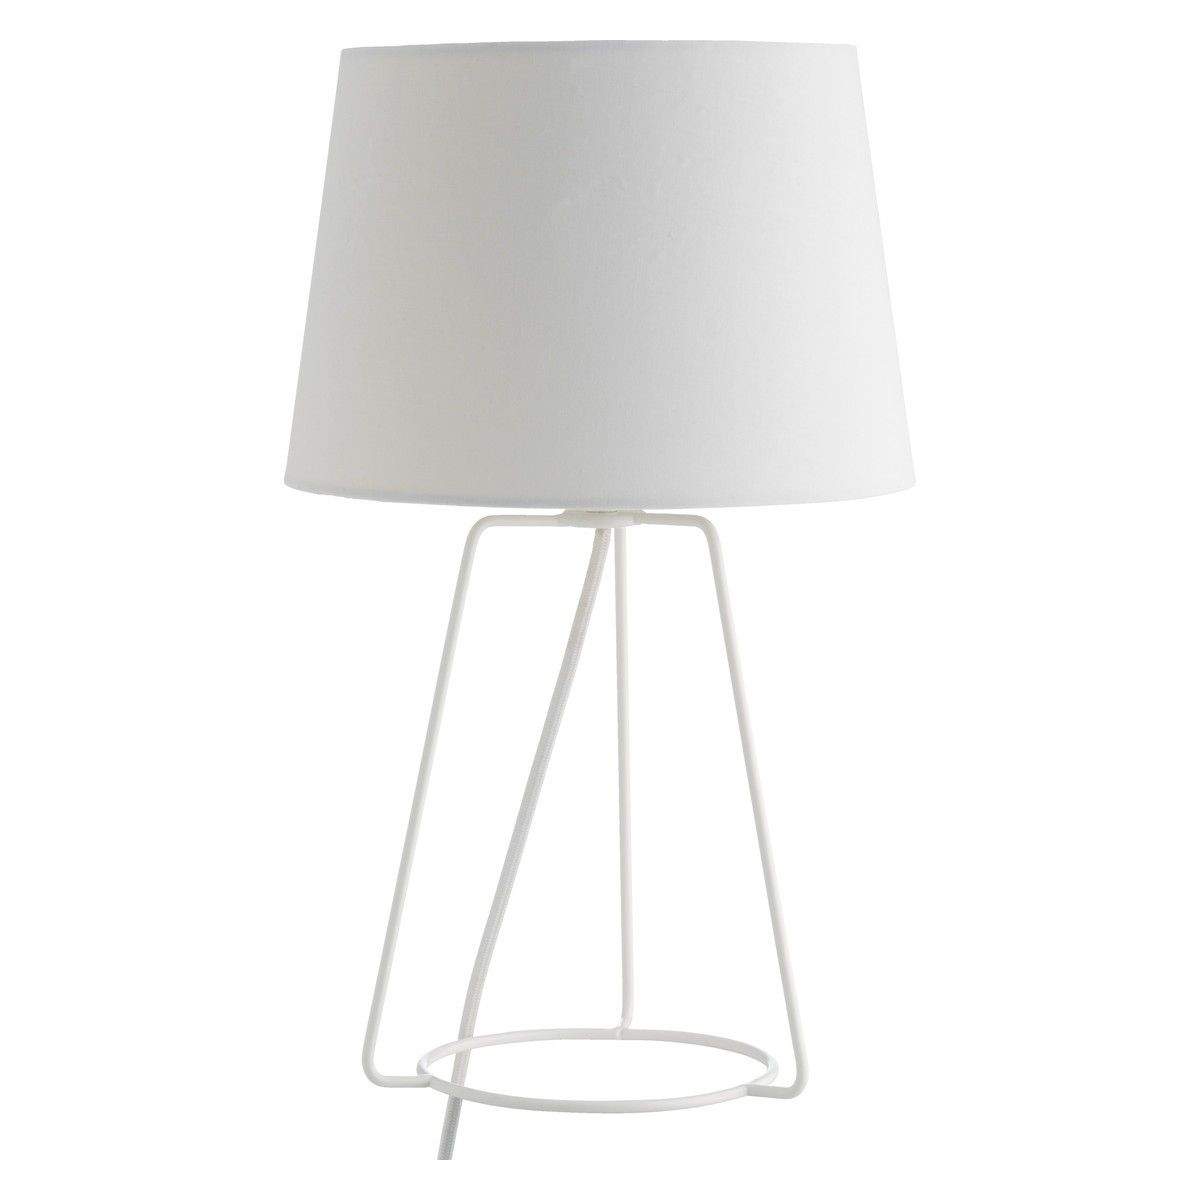 Lula white metal table lamp with fabric shade buy now at habitat lula white metal table lamp with fabric shade buy now at habitat uk mozeypictures Choice Image